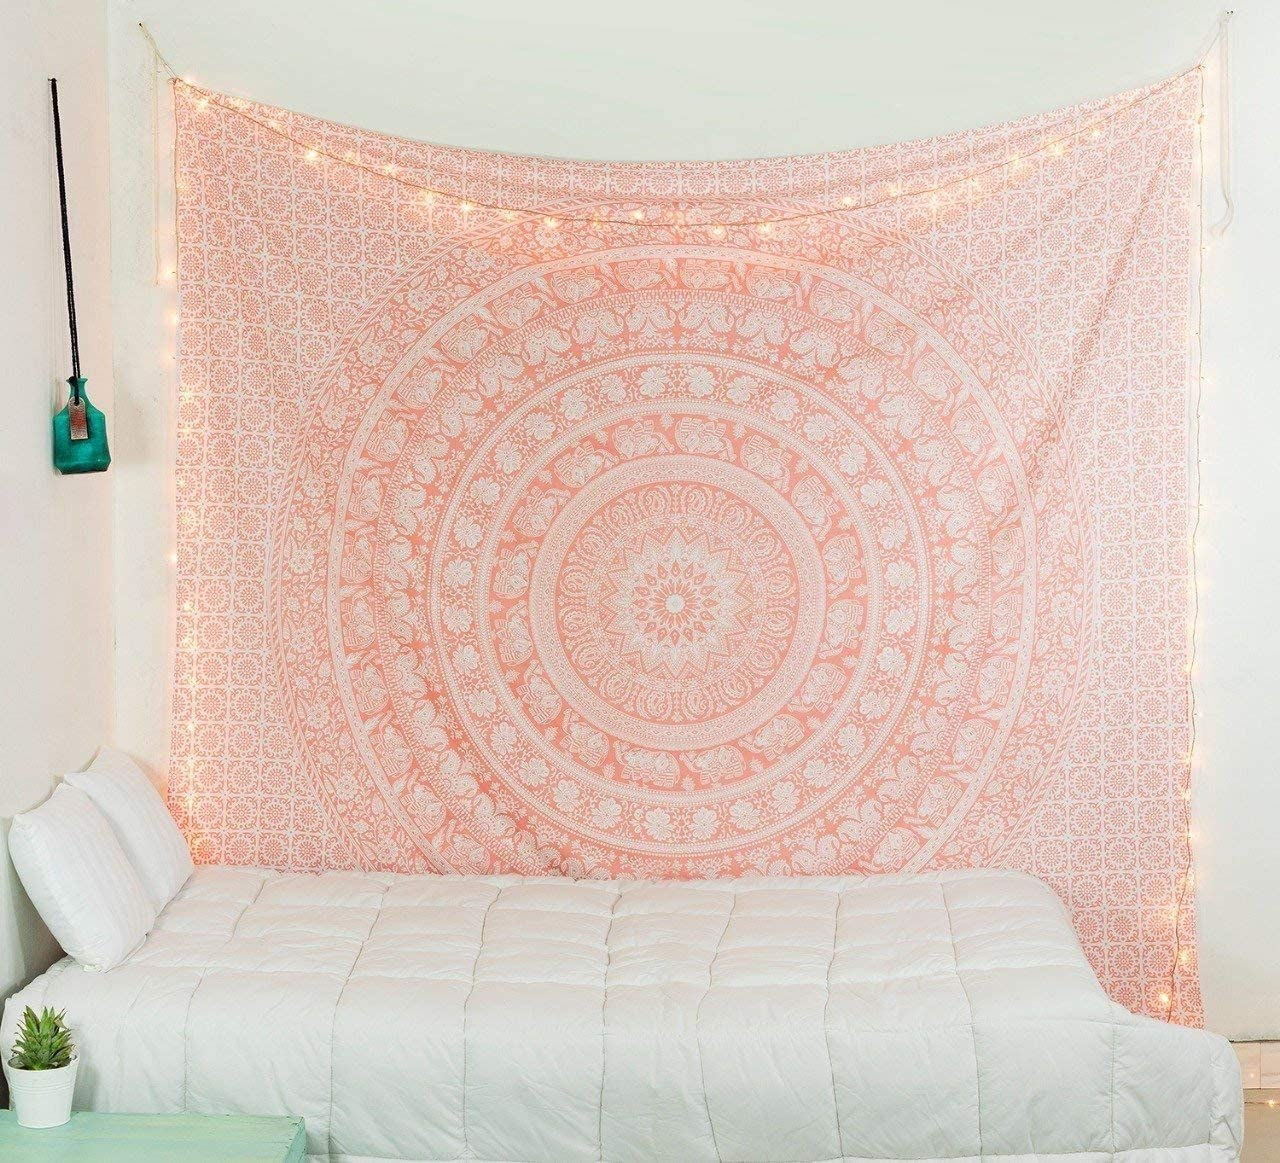 Popular Handicrafts Kp927 Elephant Twin Tapestry Hippie Mandala Bedding Indian Rose Gold Tapestry Bohemian Psychedelic Cotton Wall Tapestry Dorm Room Decor 54x82 Inch